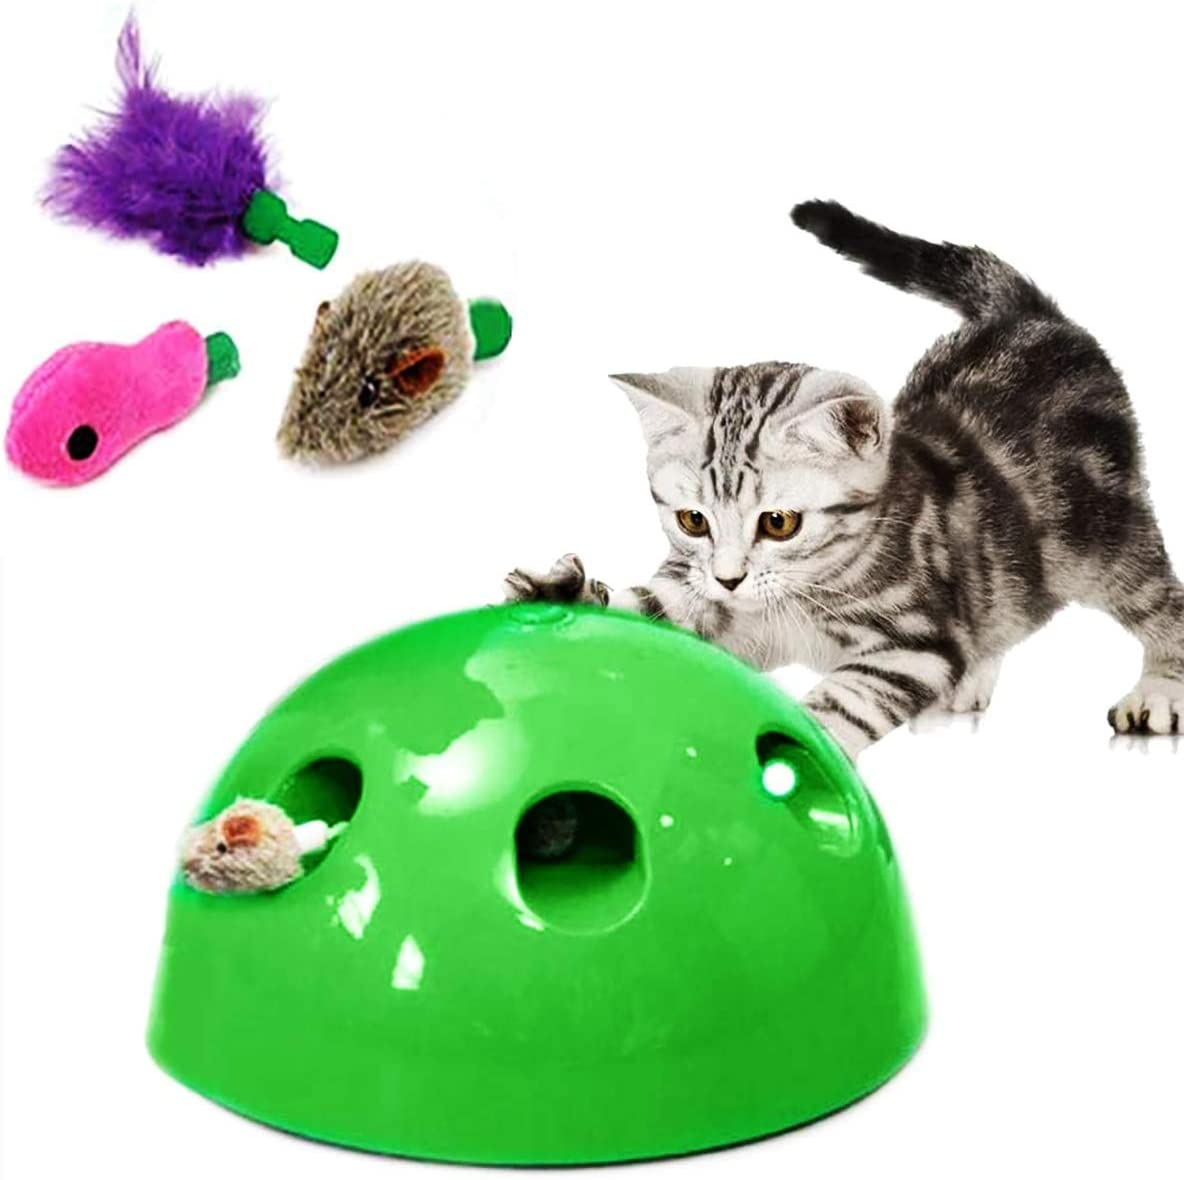 red DOACT Cat Funny Toy Cat Kitten Pet Play Chaser Toy Plush Feather Stick Interactive Training Teaser Toy